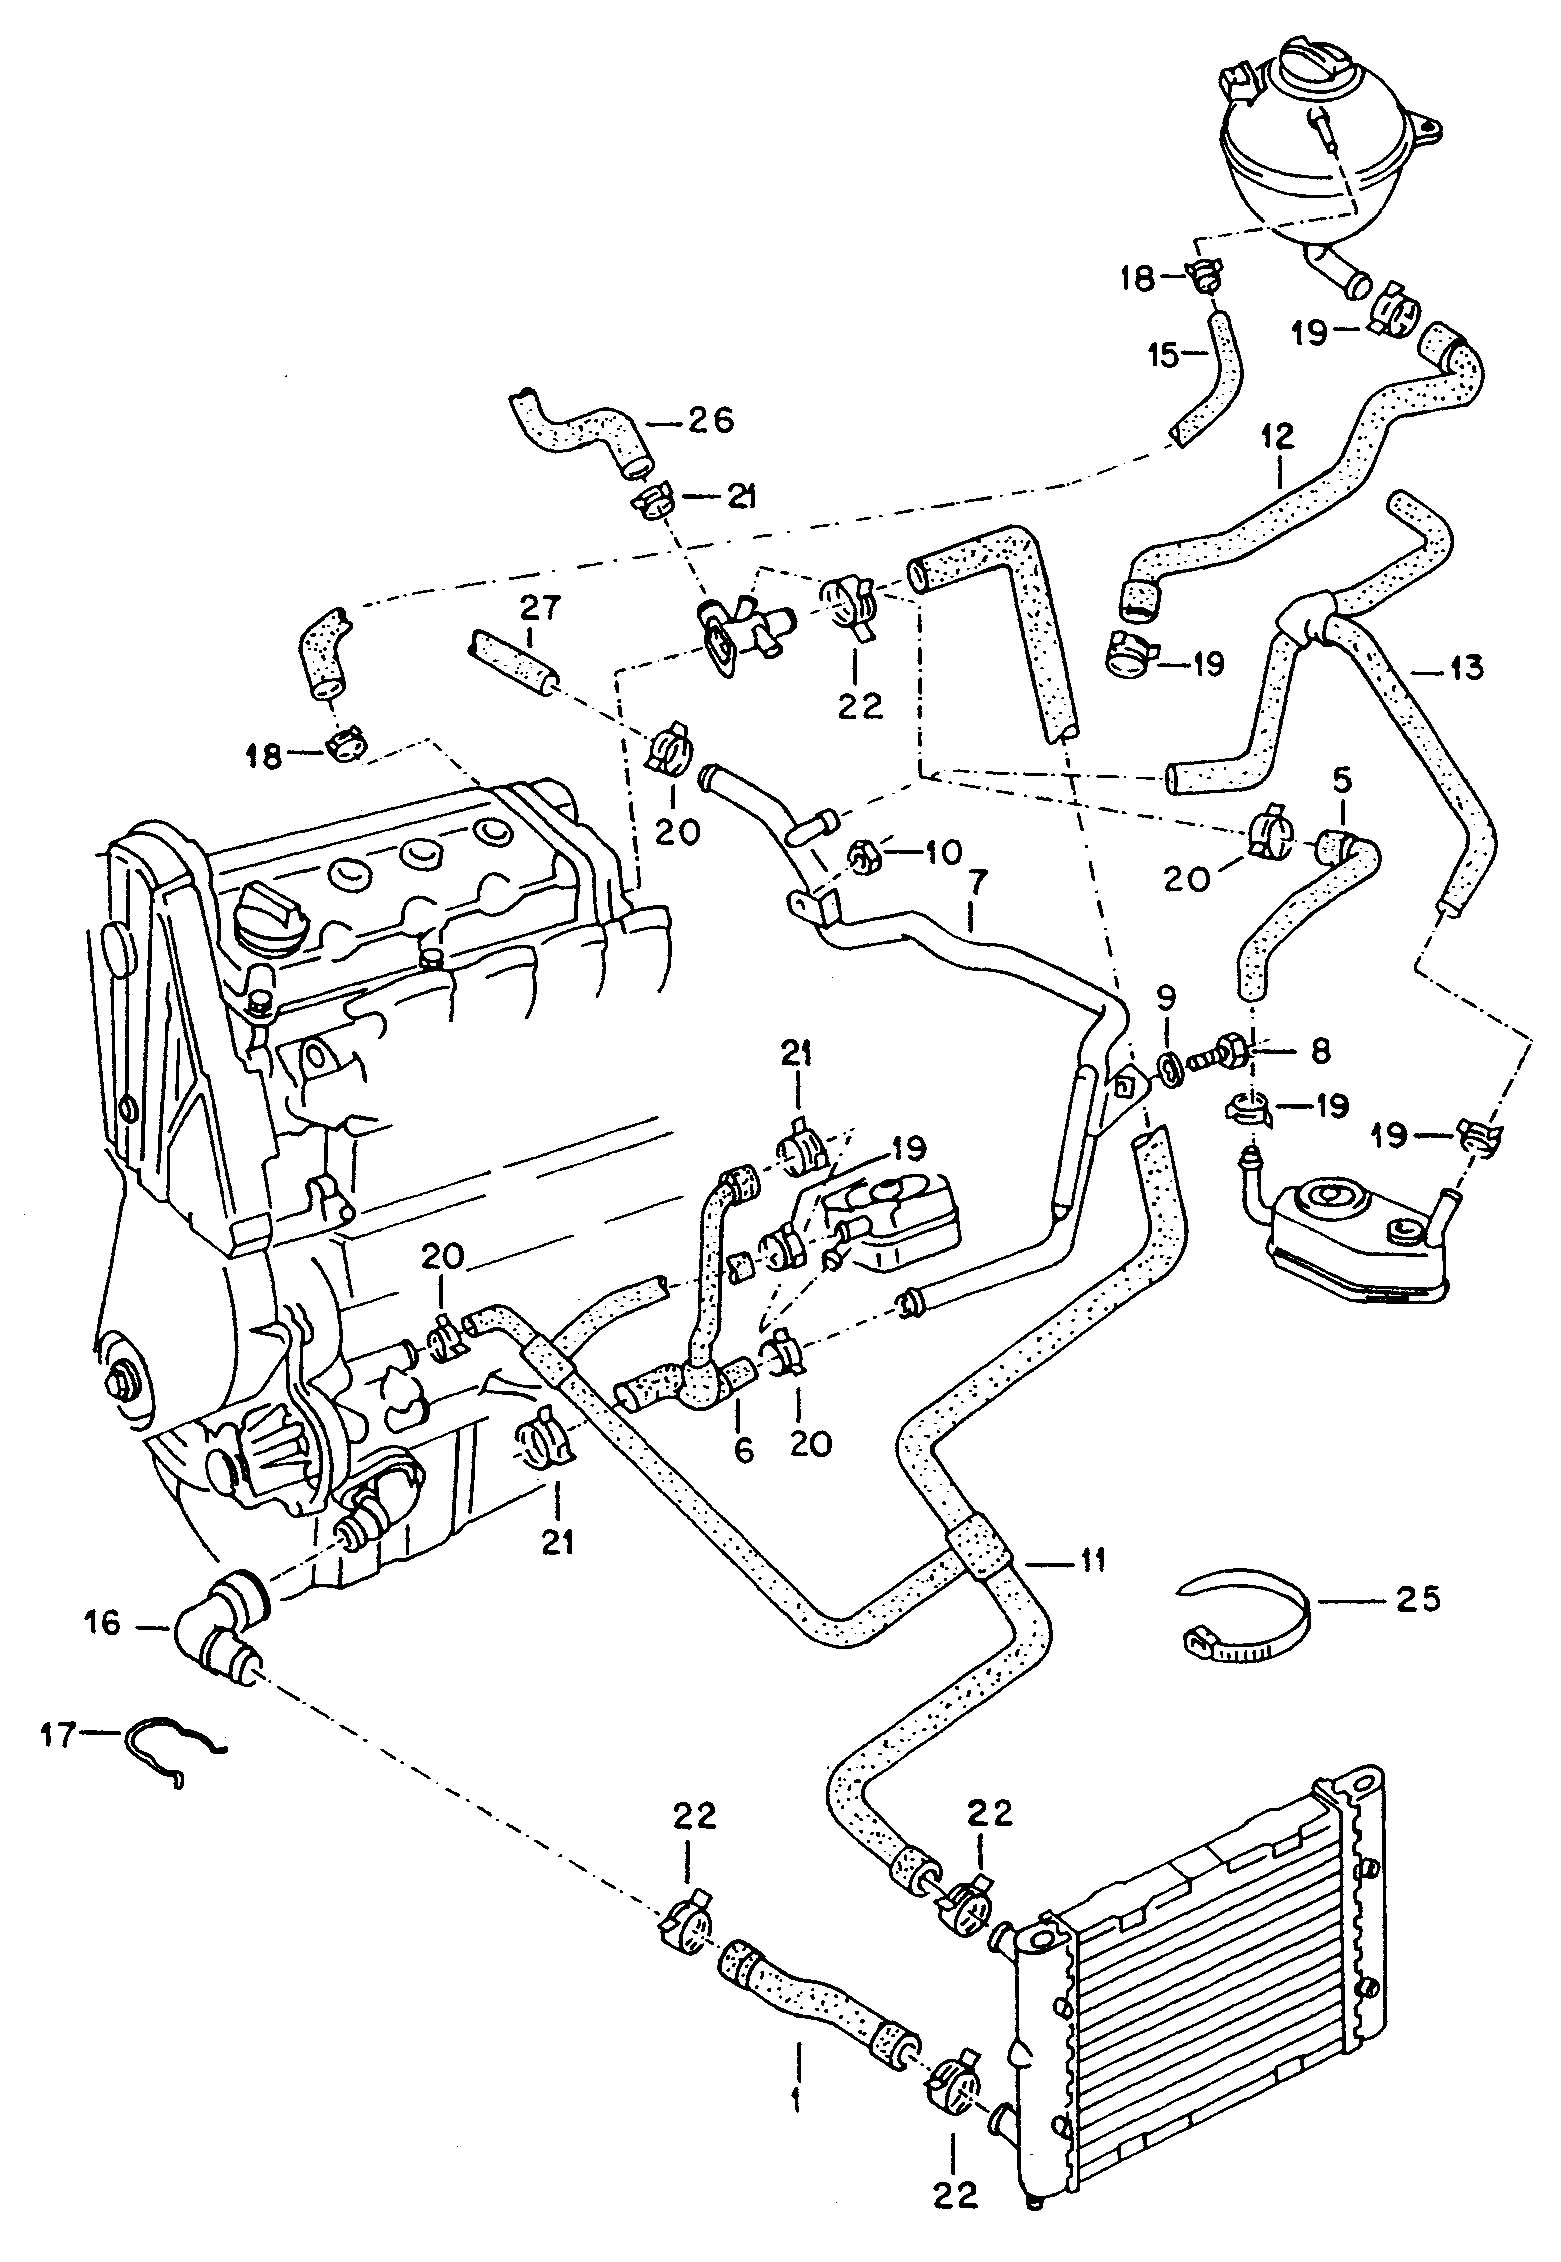 [SCHEMATICS_48ZD]  Volkswagen Engine Cooling System Diagram - 12 Volt Rocker Wiring Diagram  Free Picture for Wiring Diagram Schematics | 2000 Vw Jetta Engine Diagram |  | Wiring Diagram Schematics